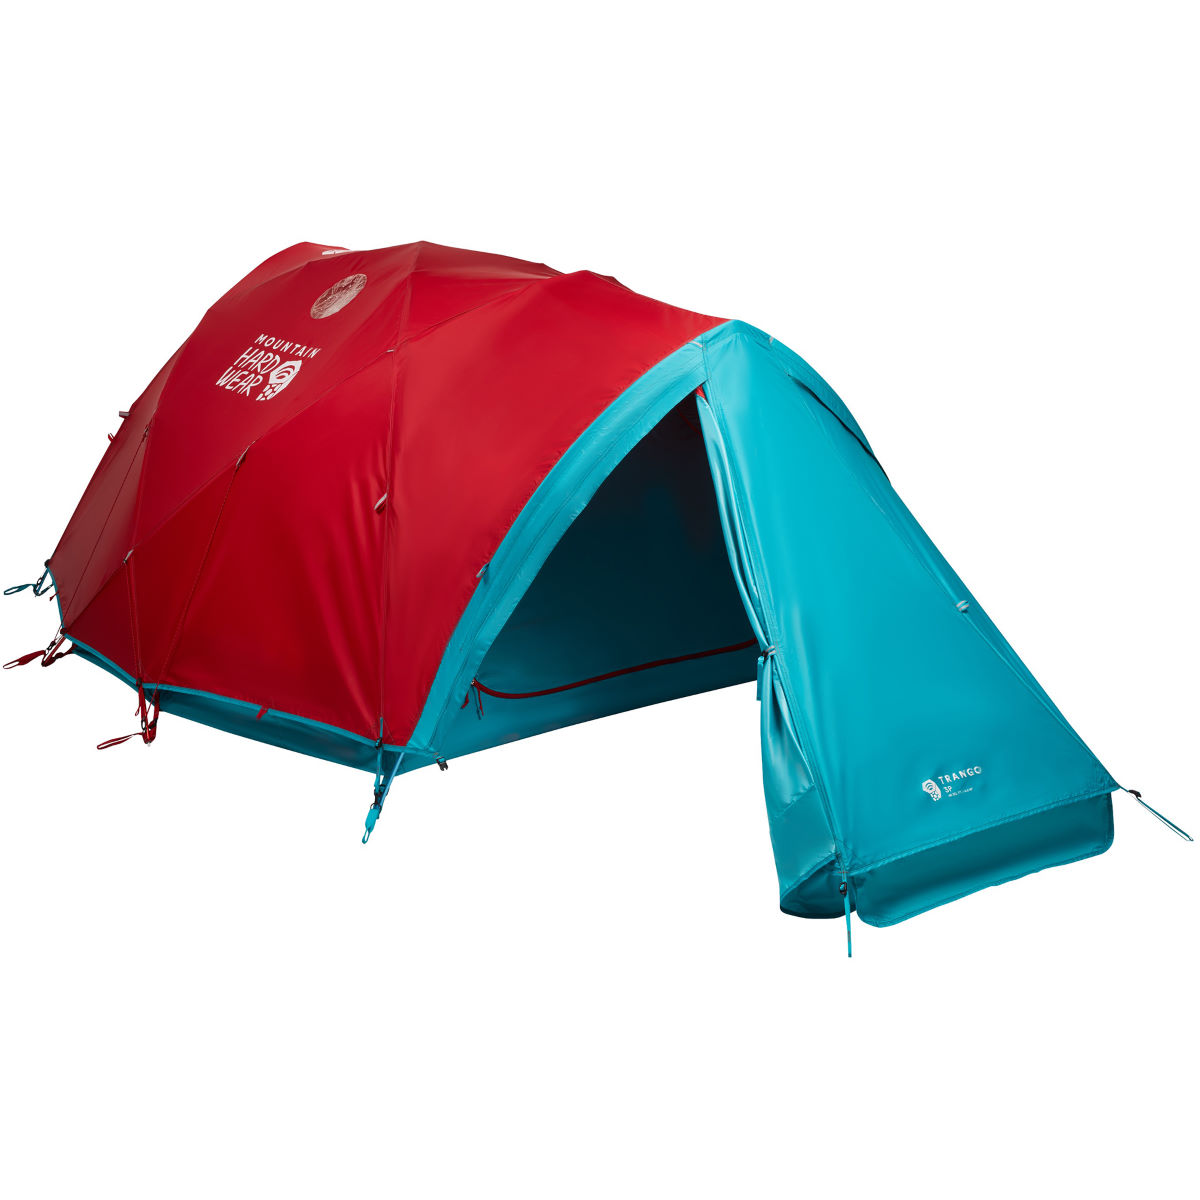 Mountain Hardwear Mountain Hardwear Trango 3 Tent   Tents